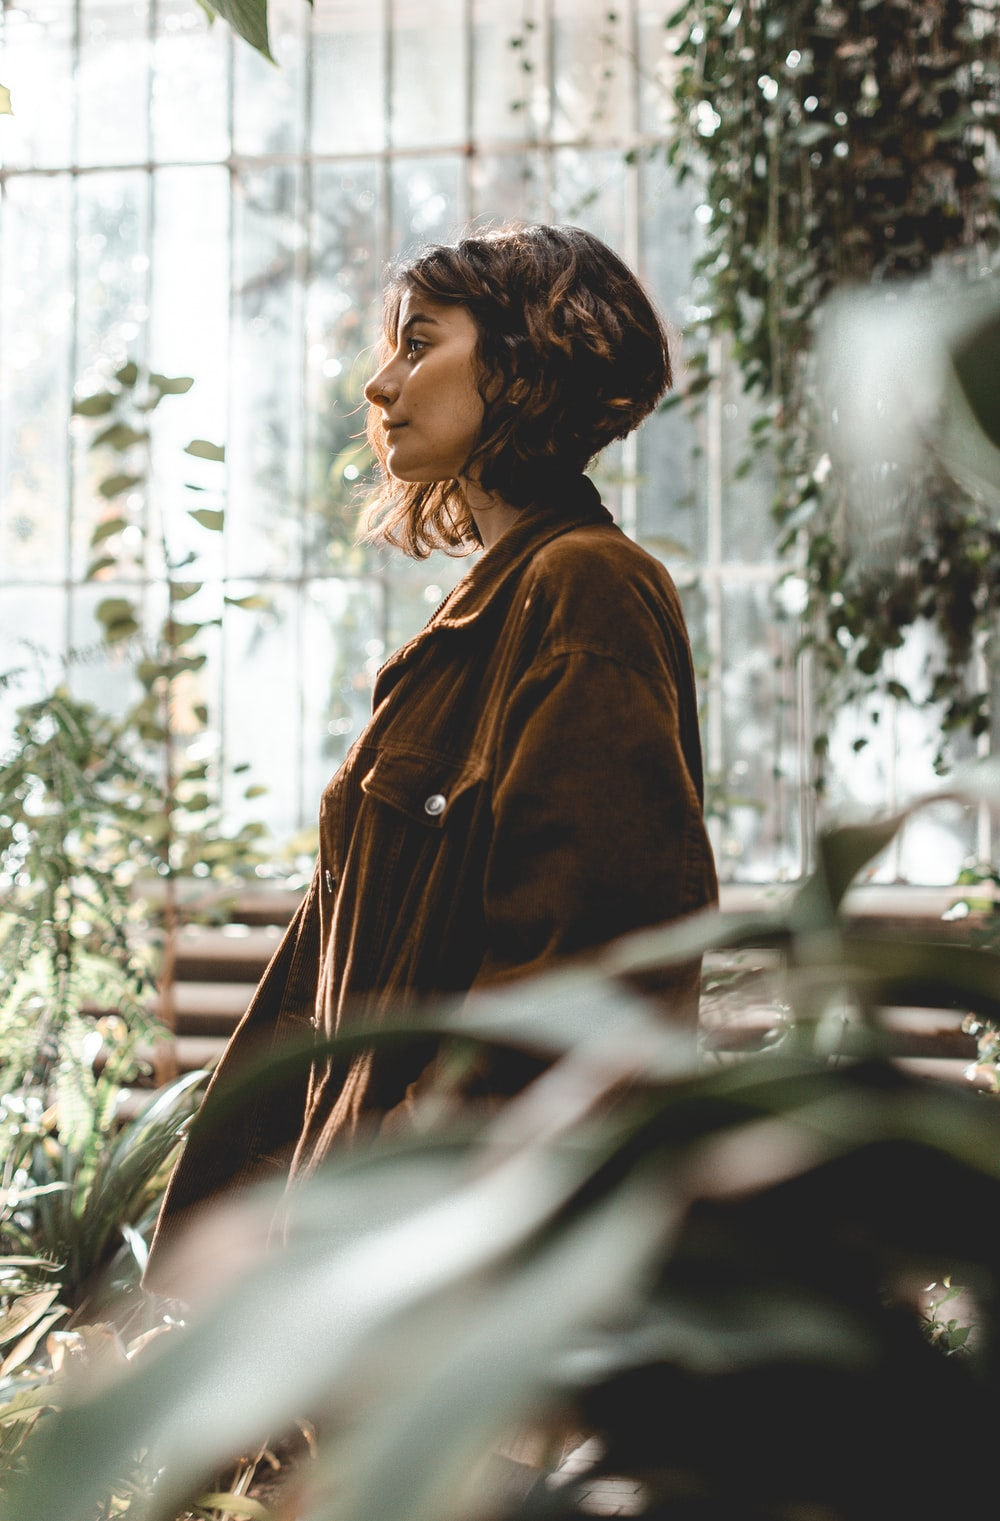 woman in brown leather jacket standing near green plants during daytime